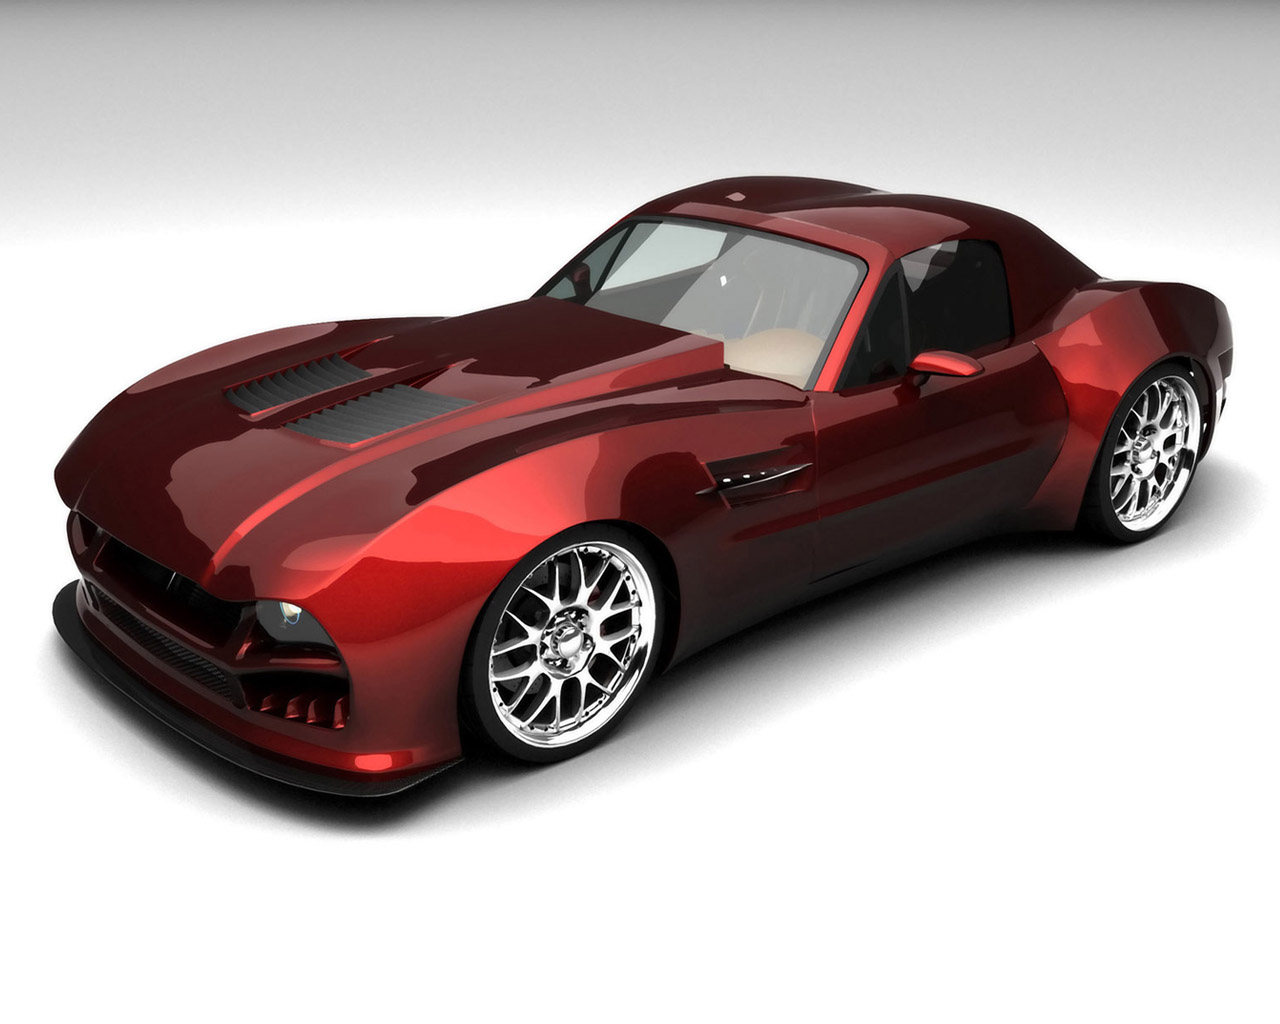 cars wallpapers desktop hd cars wallpapers desktop hd cars wallpapers 1280x1024